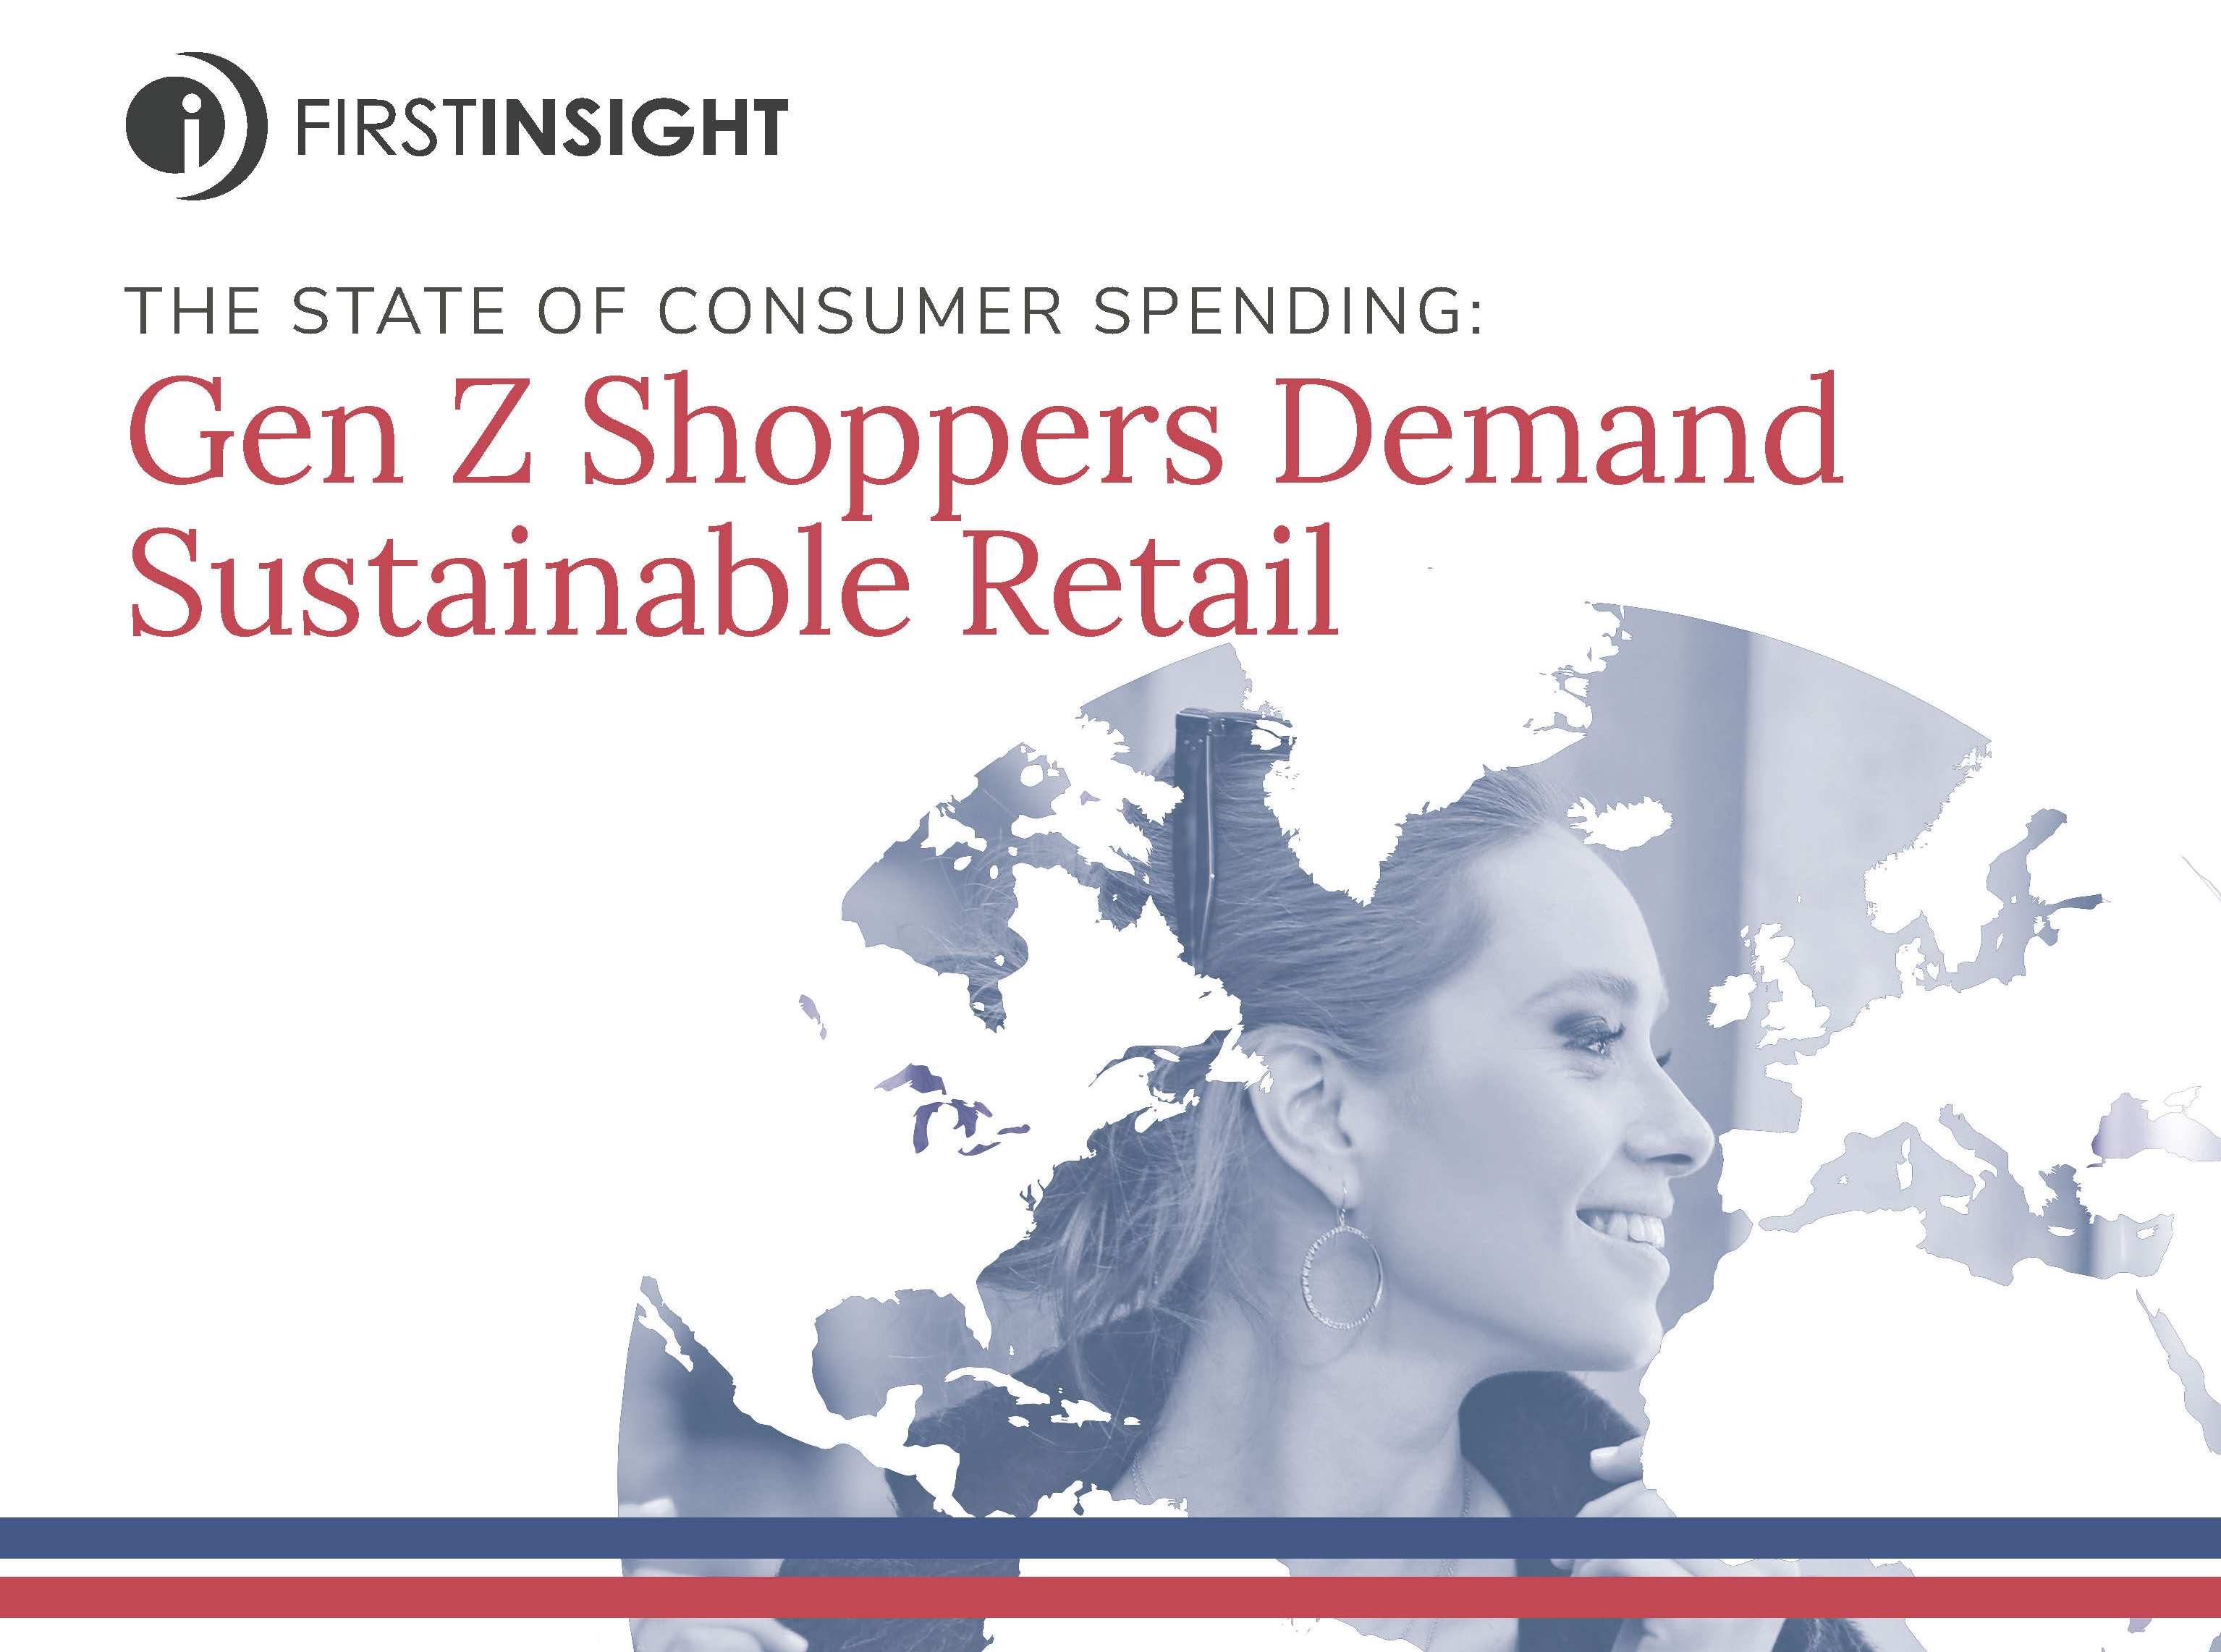 First Insight Finds Expectations for Sustainable Retail Practices Growing with the Rise of Gen Z Shoppers